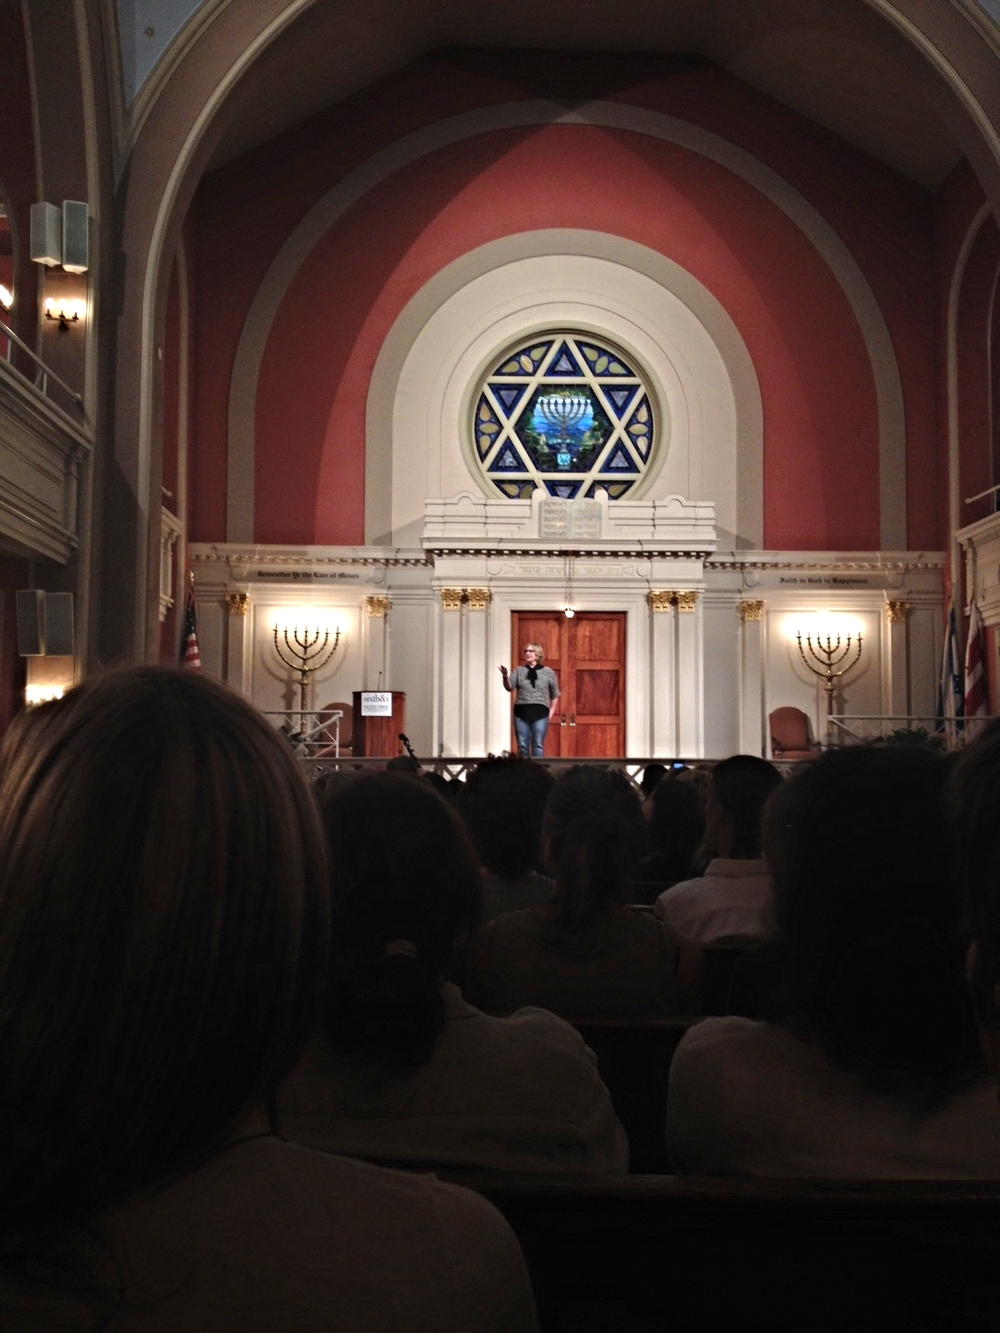 Brene Brown speaking at the historic Sixth and I Synagogue in Washington, DC.